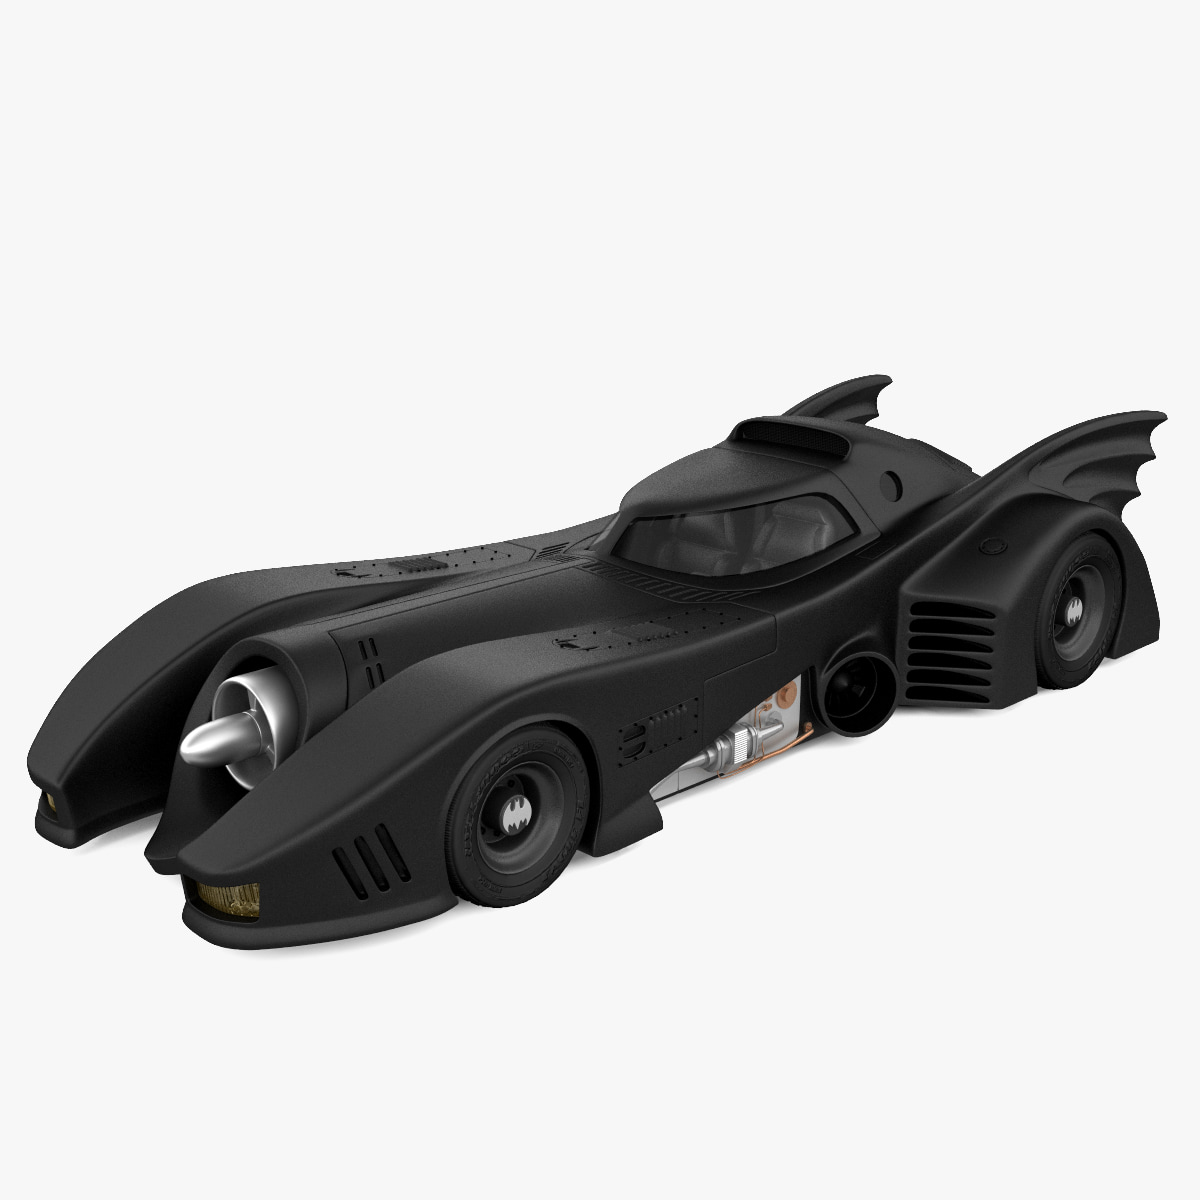 batman pinewood derby car designs with Collectioncdwn Co2 Cars Batmobile on Watch in addition 103276 besides Ferrari F1 Team together with Celebtvs Top 10 Hottest News Anchors additionally Pinewood Derby.